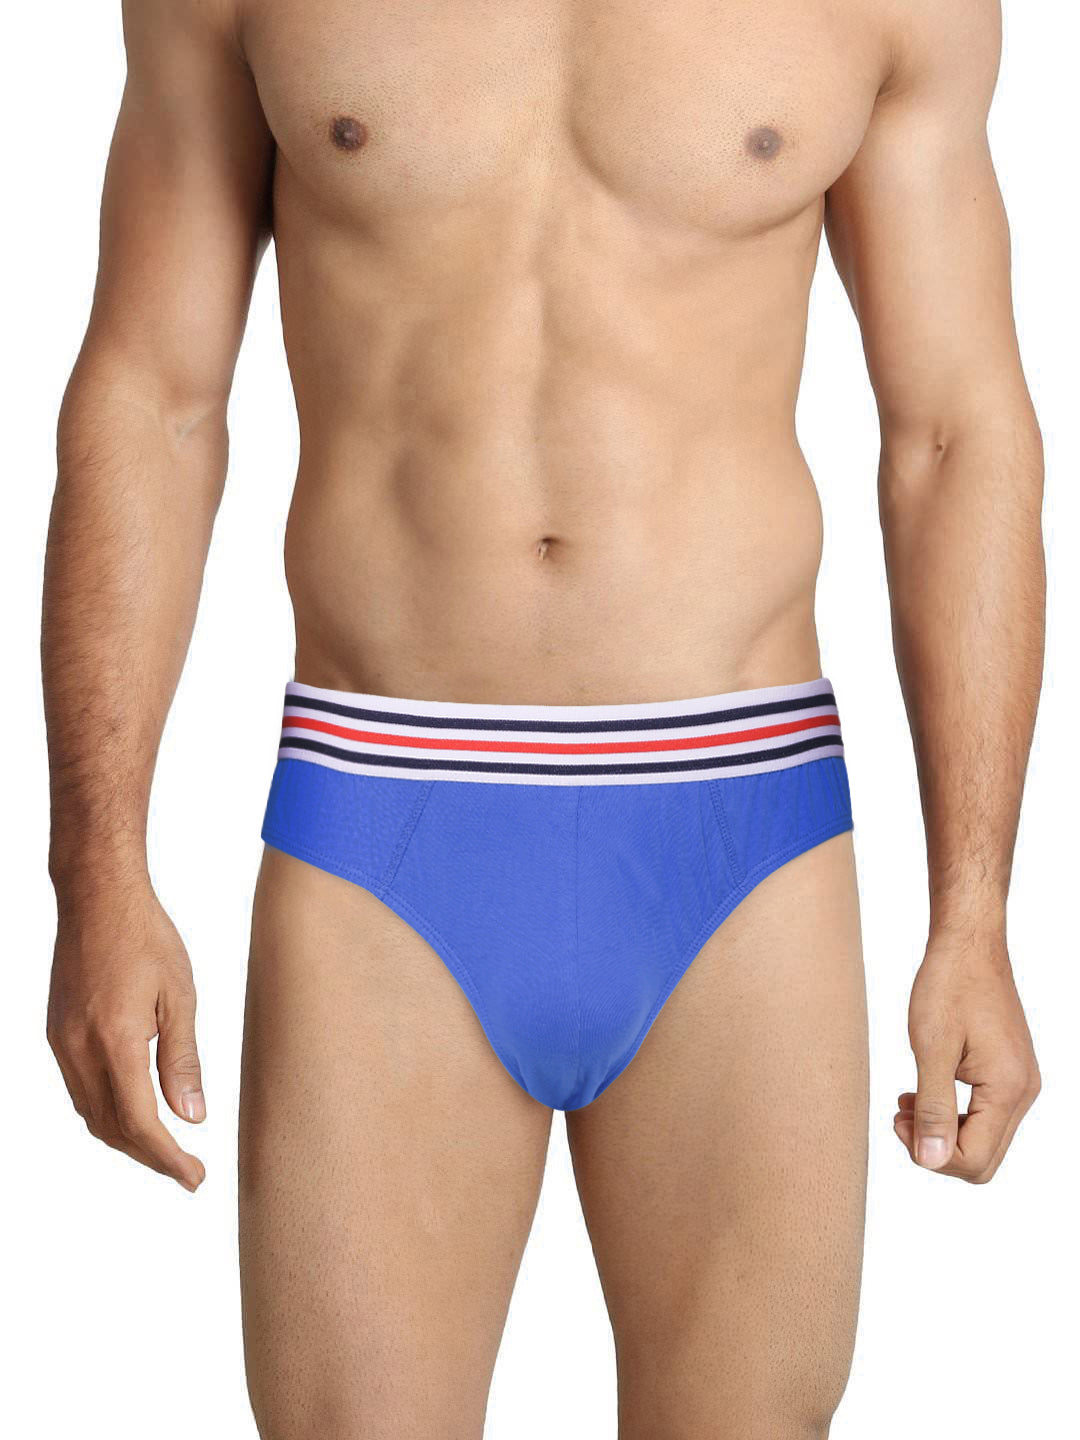 The Cool Racing Blue Briefs